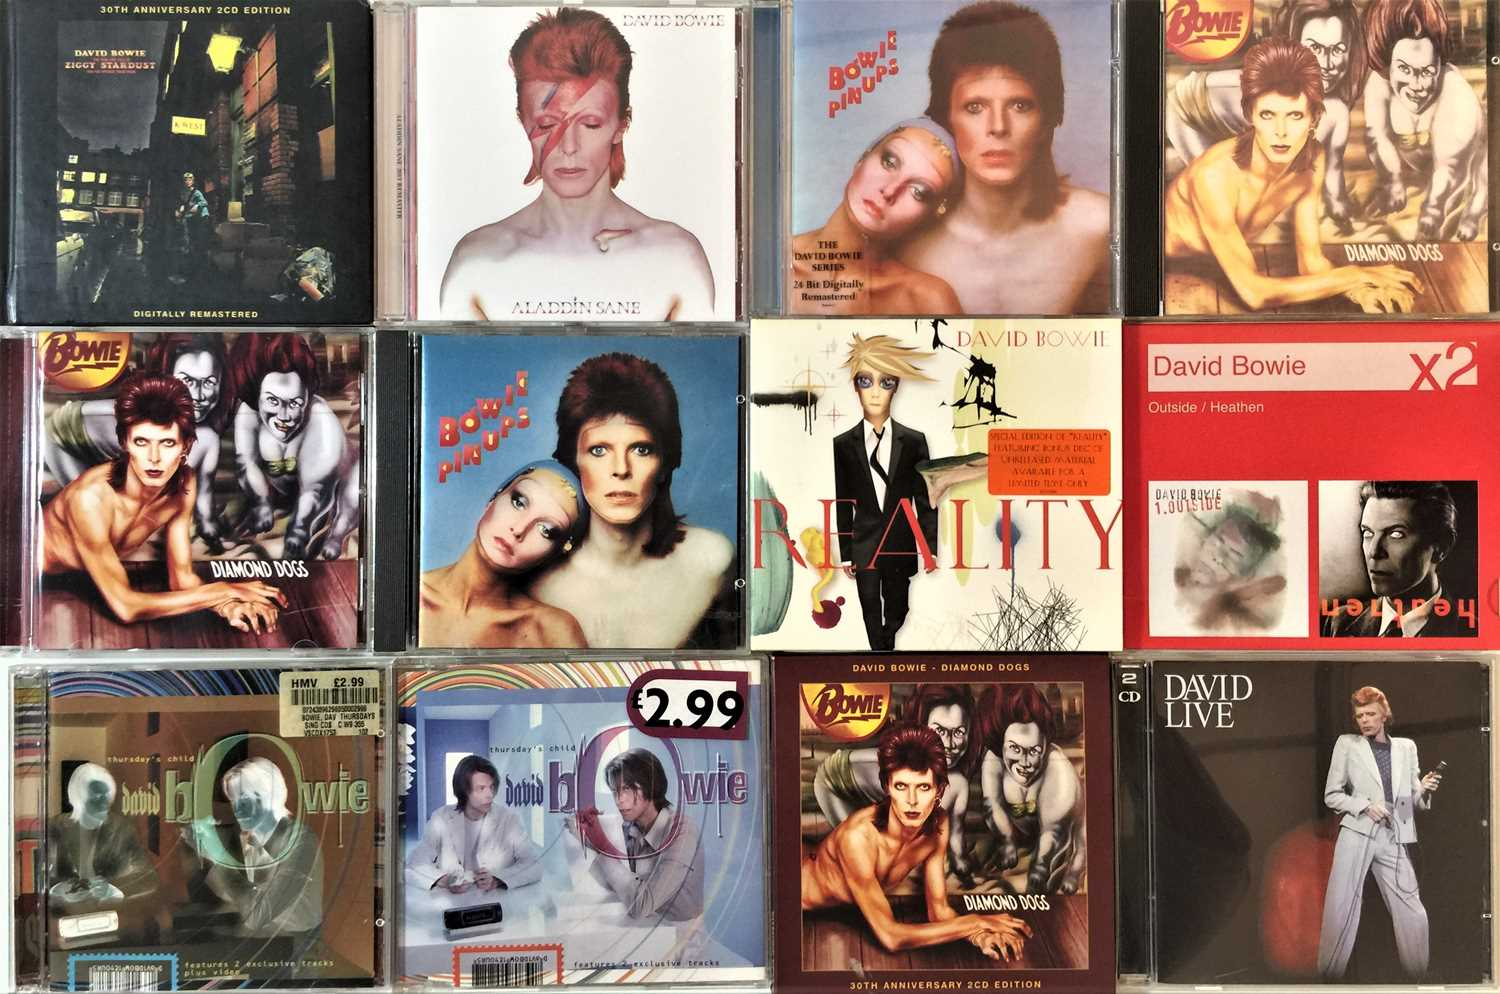 """DAVID BOWIE - CD COLLECTION PLUS LP/12"""" SELECTION - Image 2 of 5"""